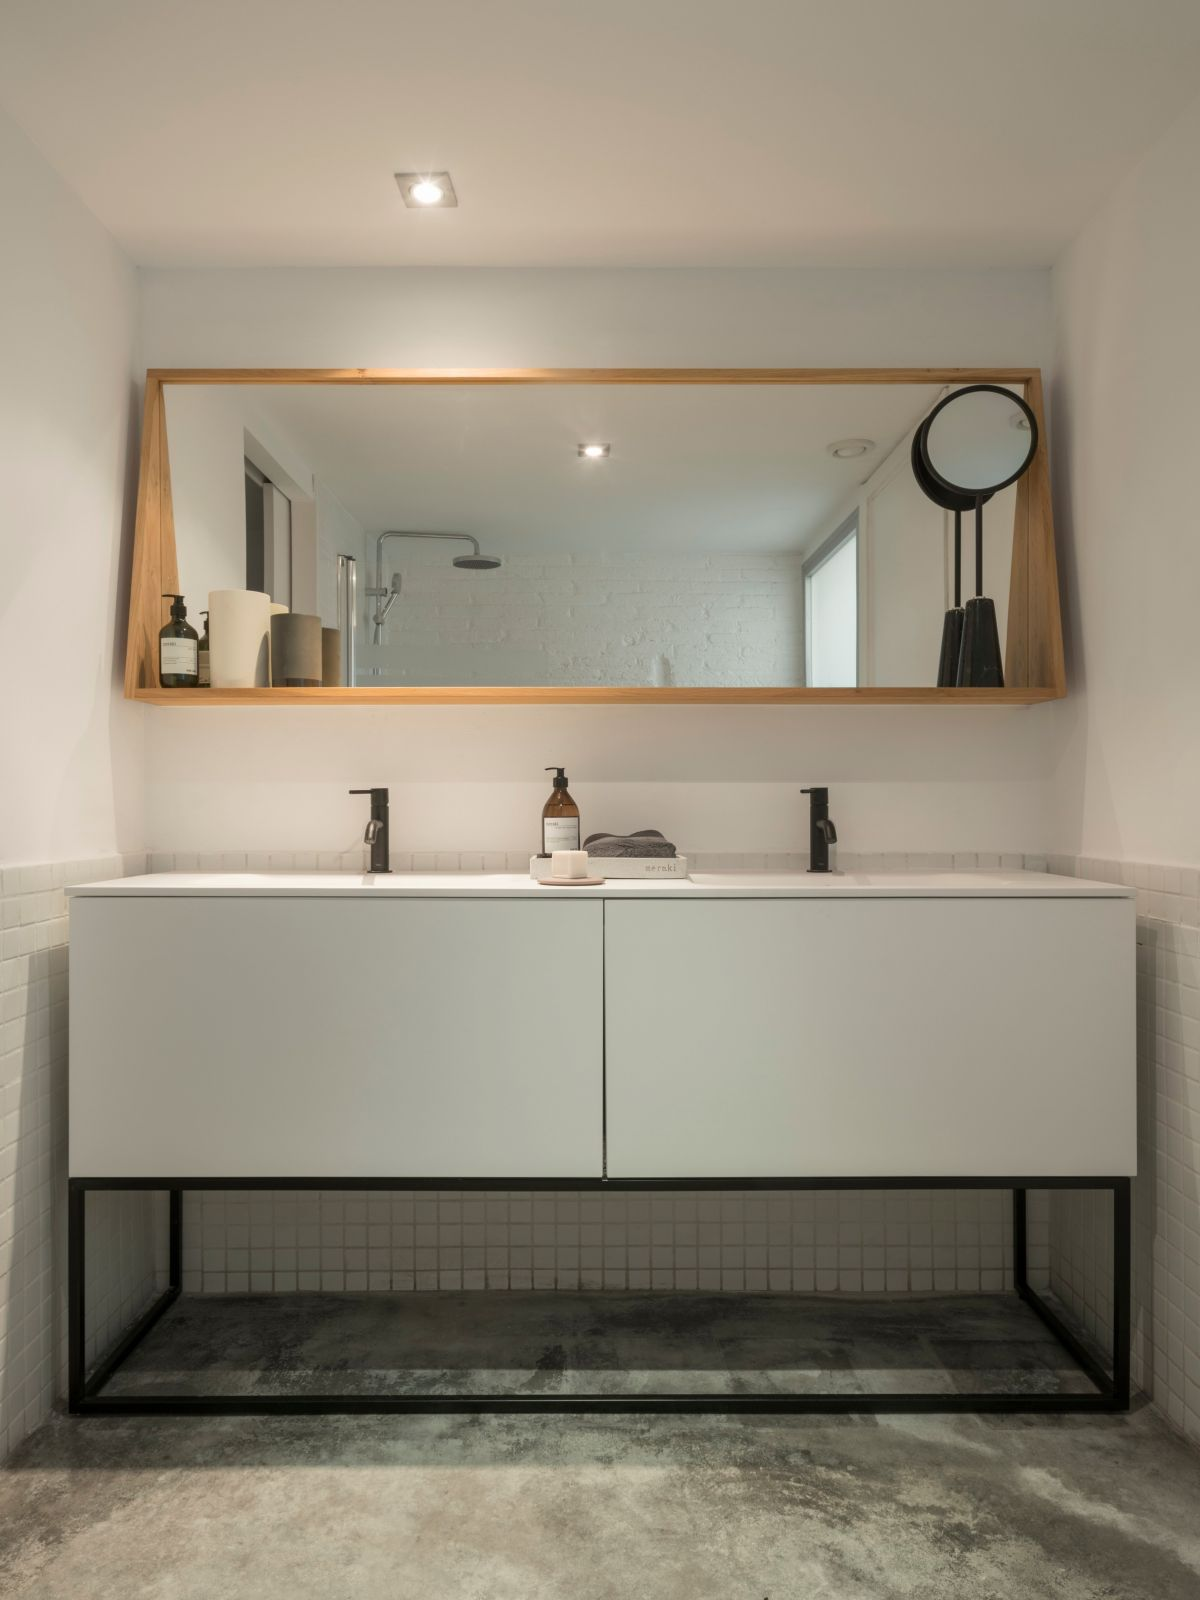 Minimalism is always present throughout the spaces, often mixed with different styles